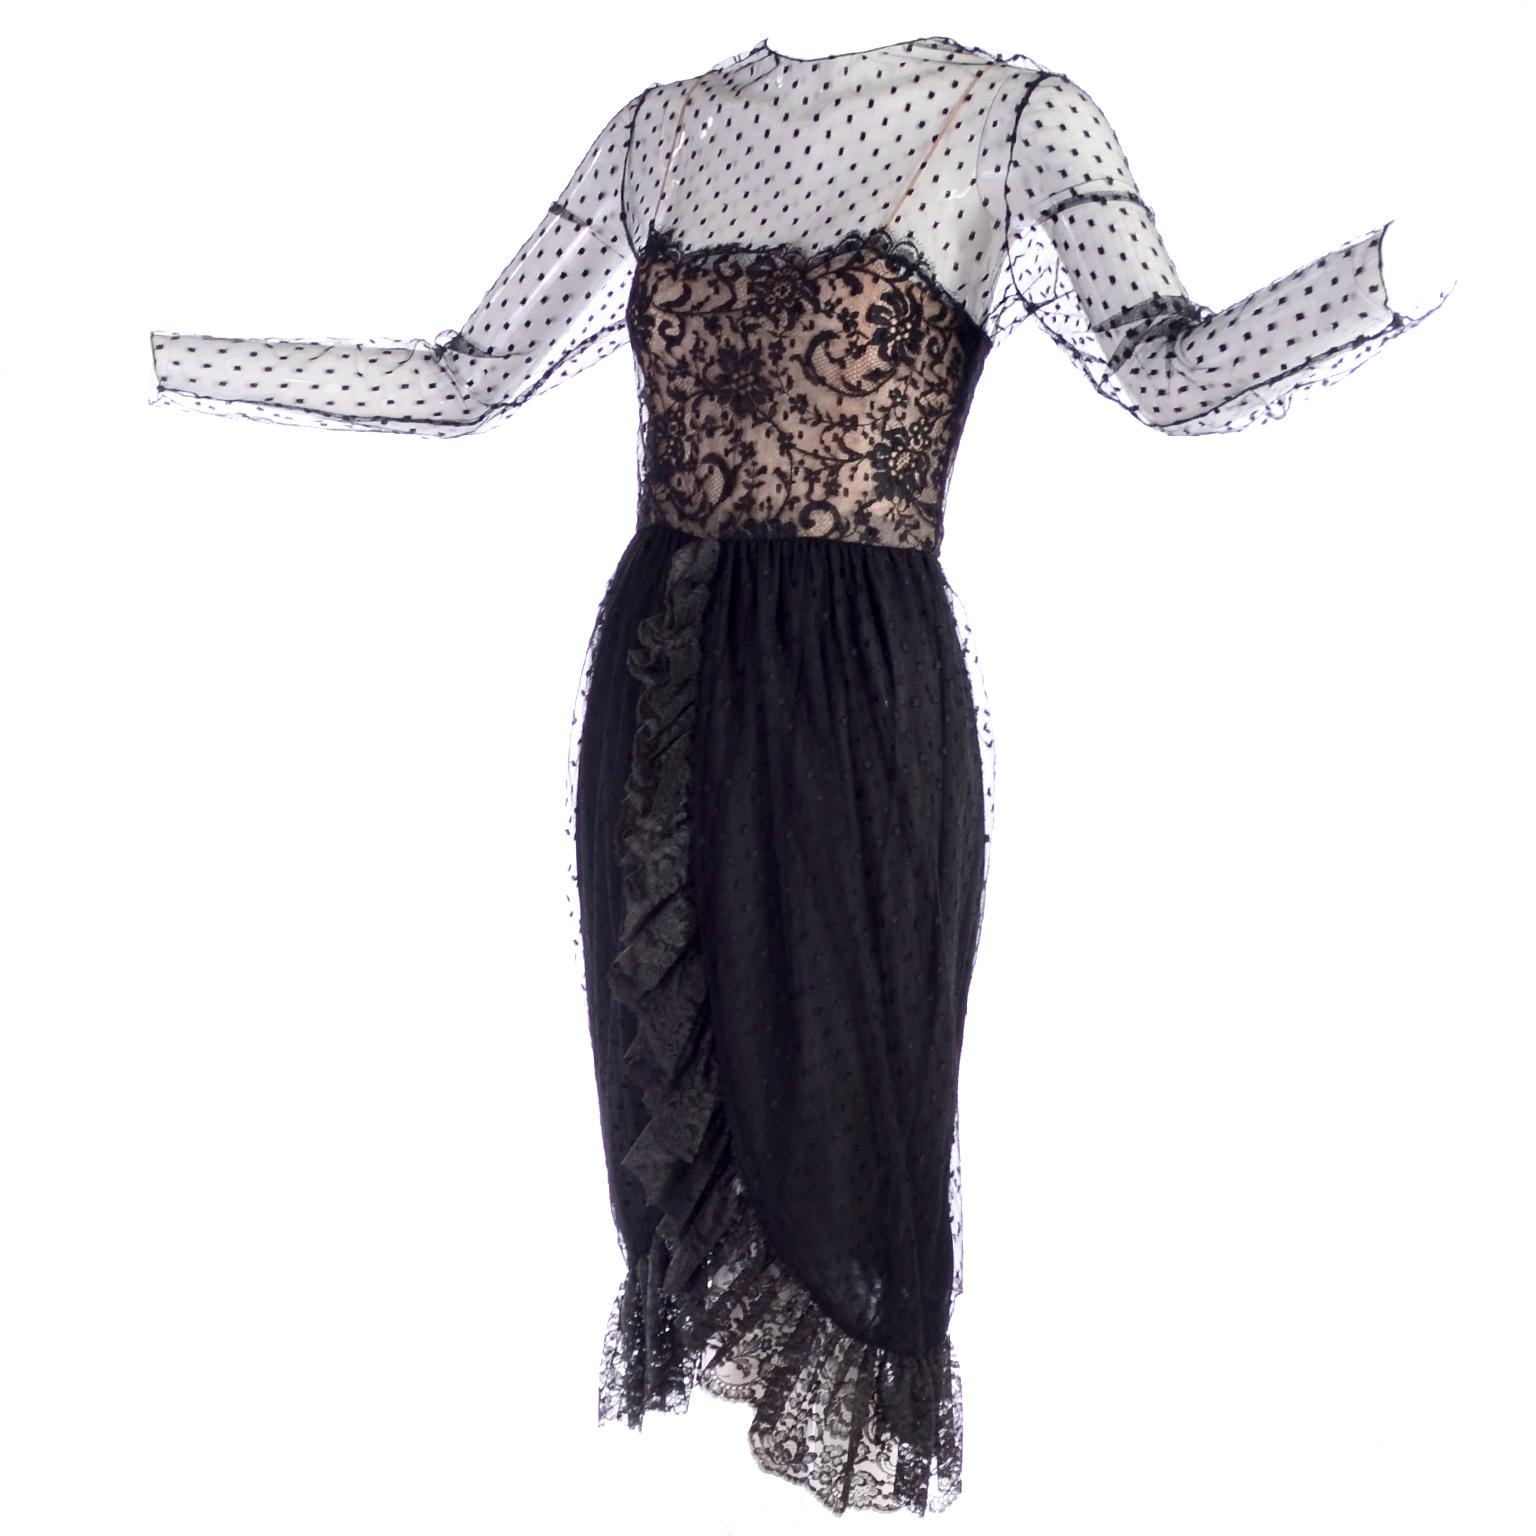 29dc21ecf83 Bill Blass Vintage Dress Abstract Black White Evening Gown Draping For Sale  at 1stdibs